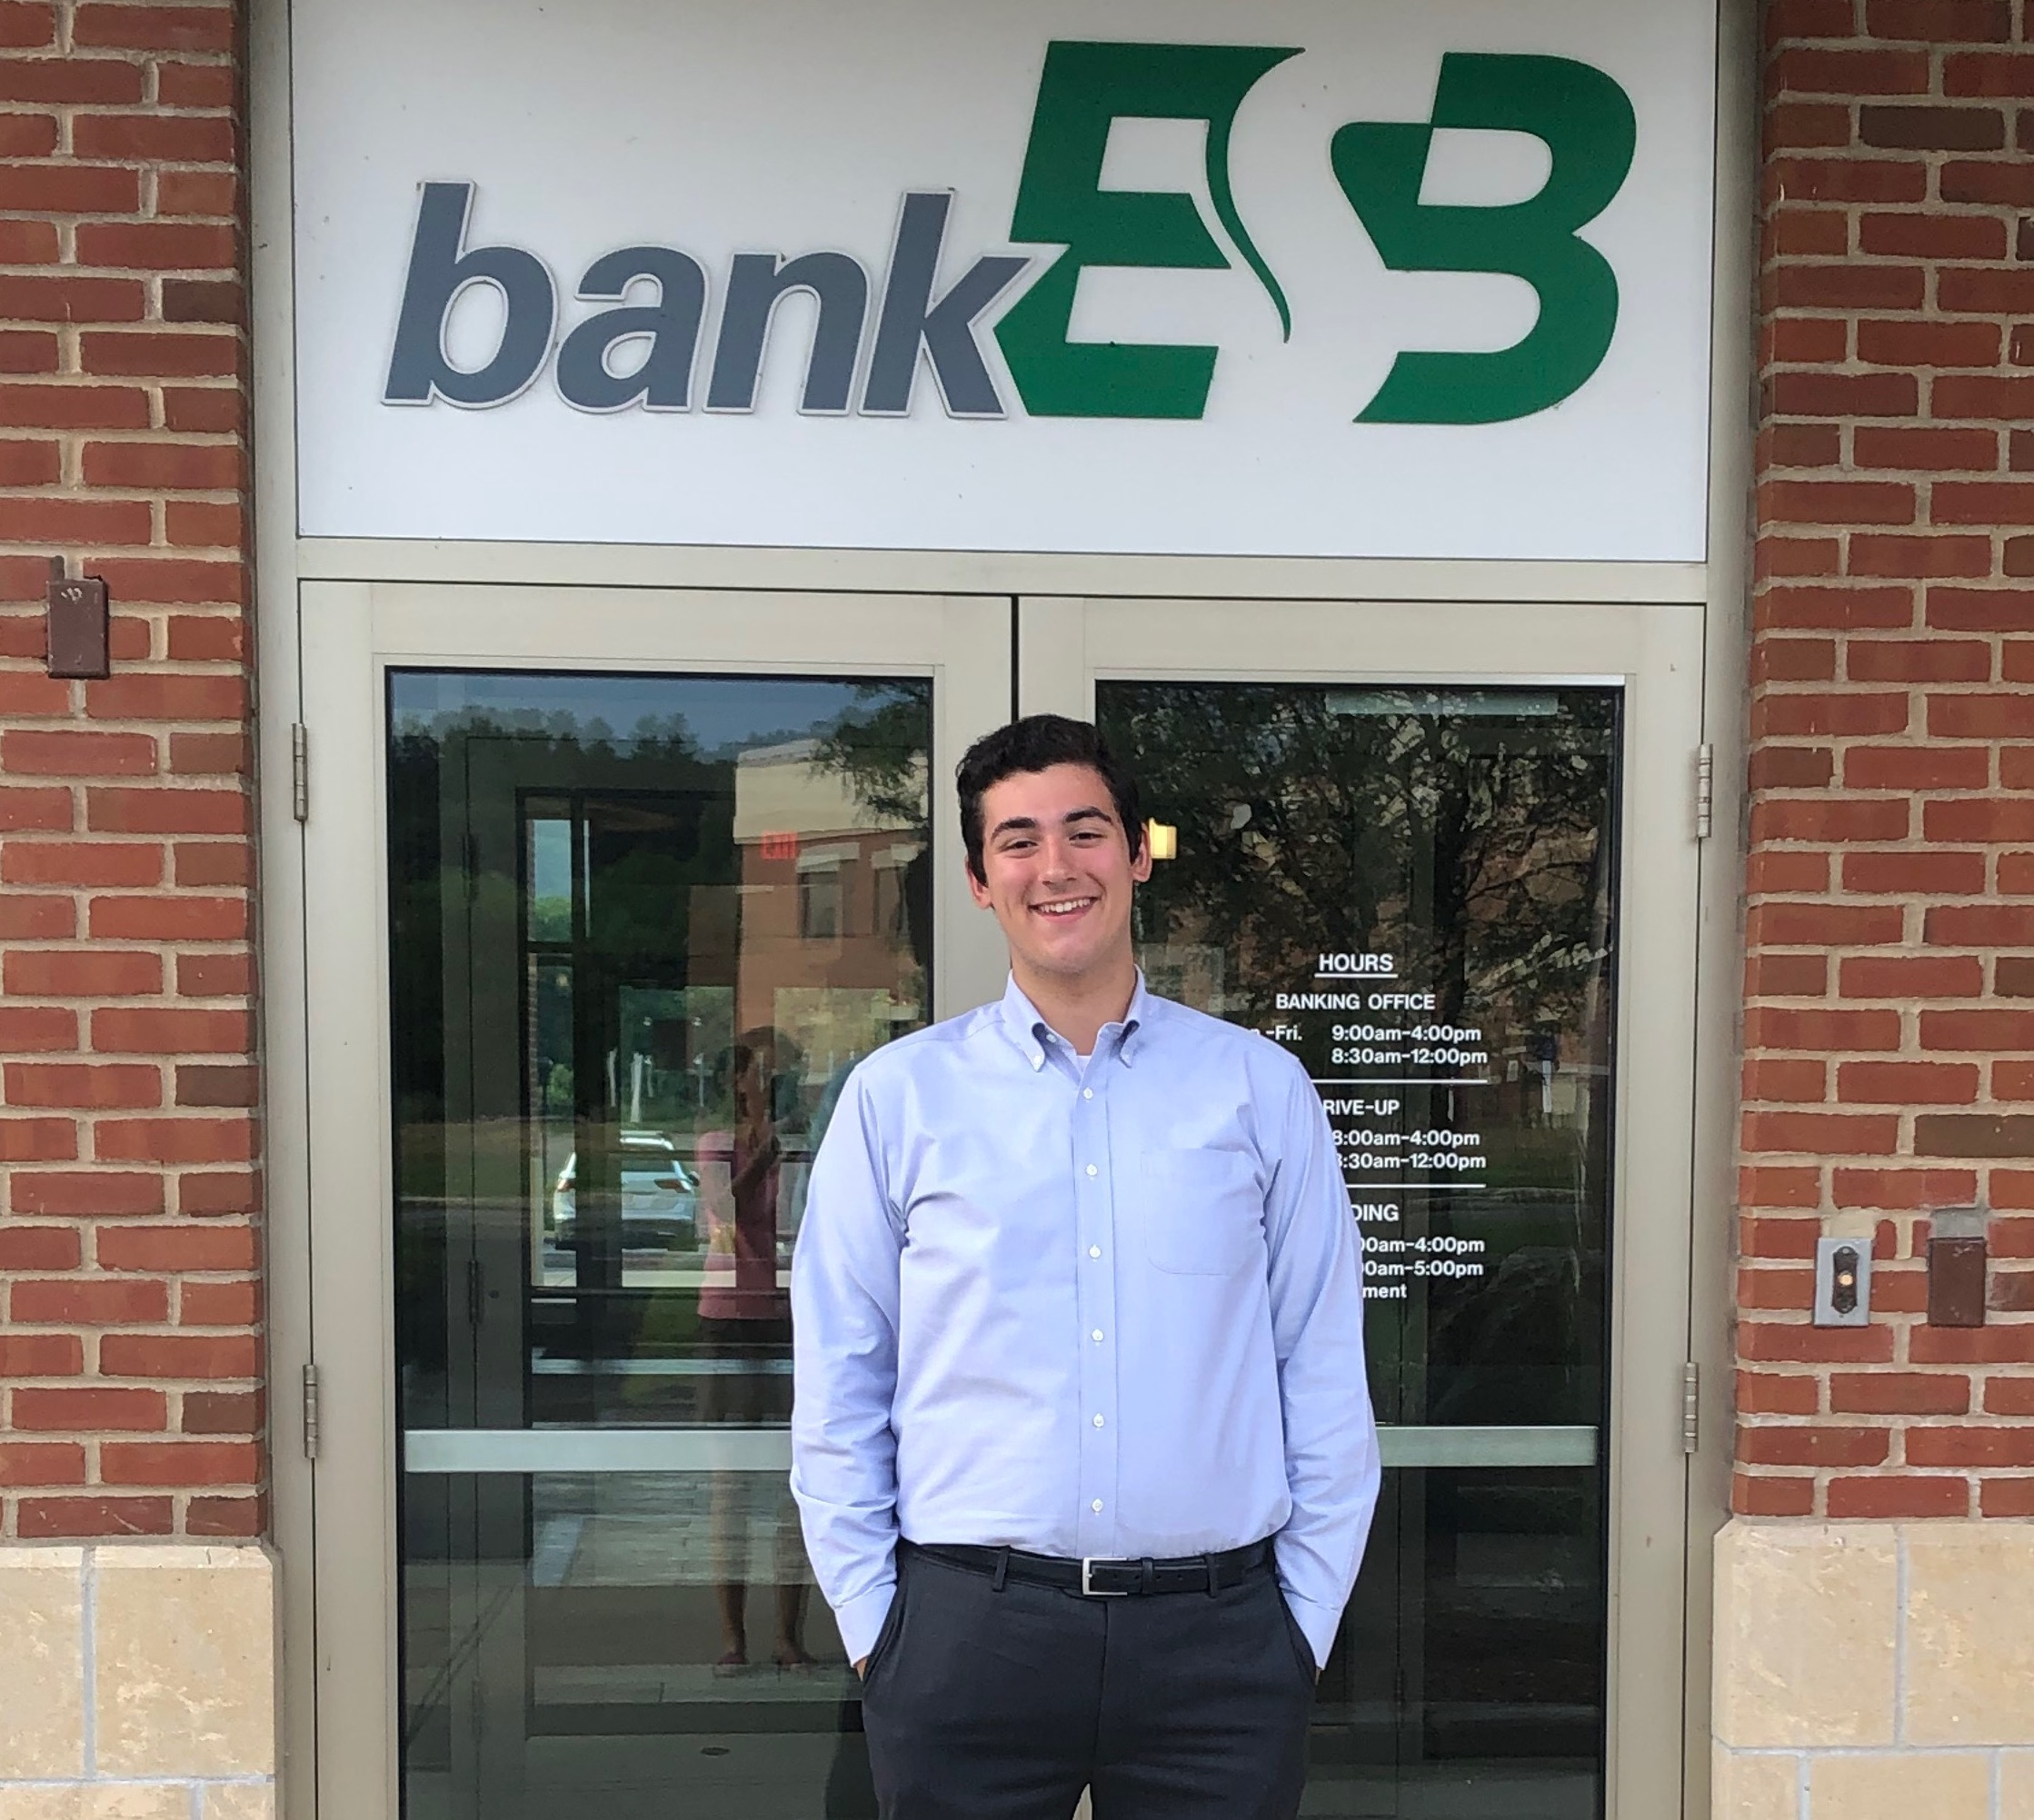 Student In front of Bank